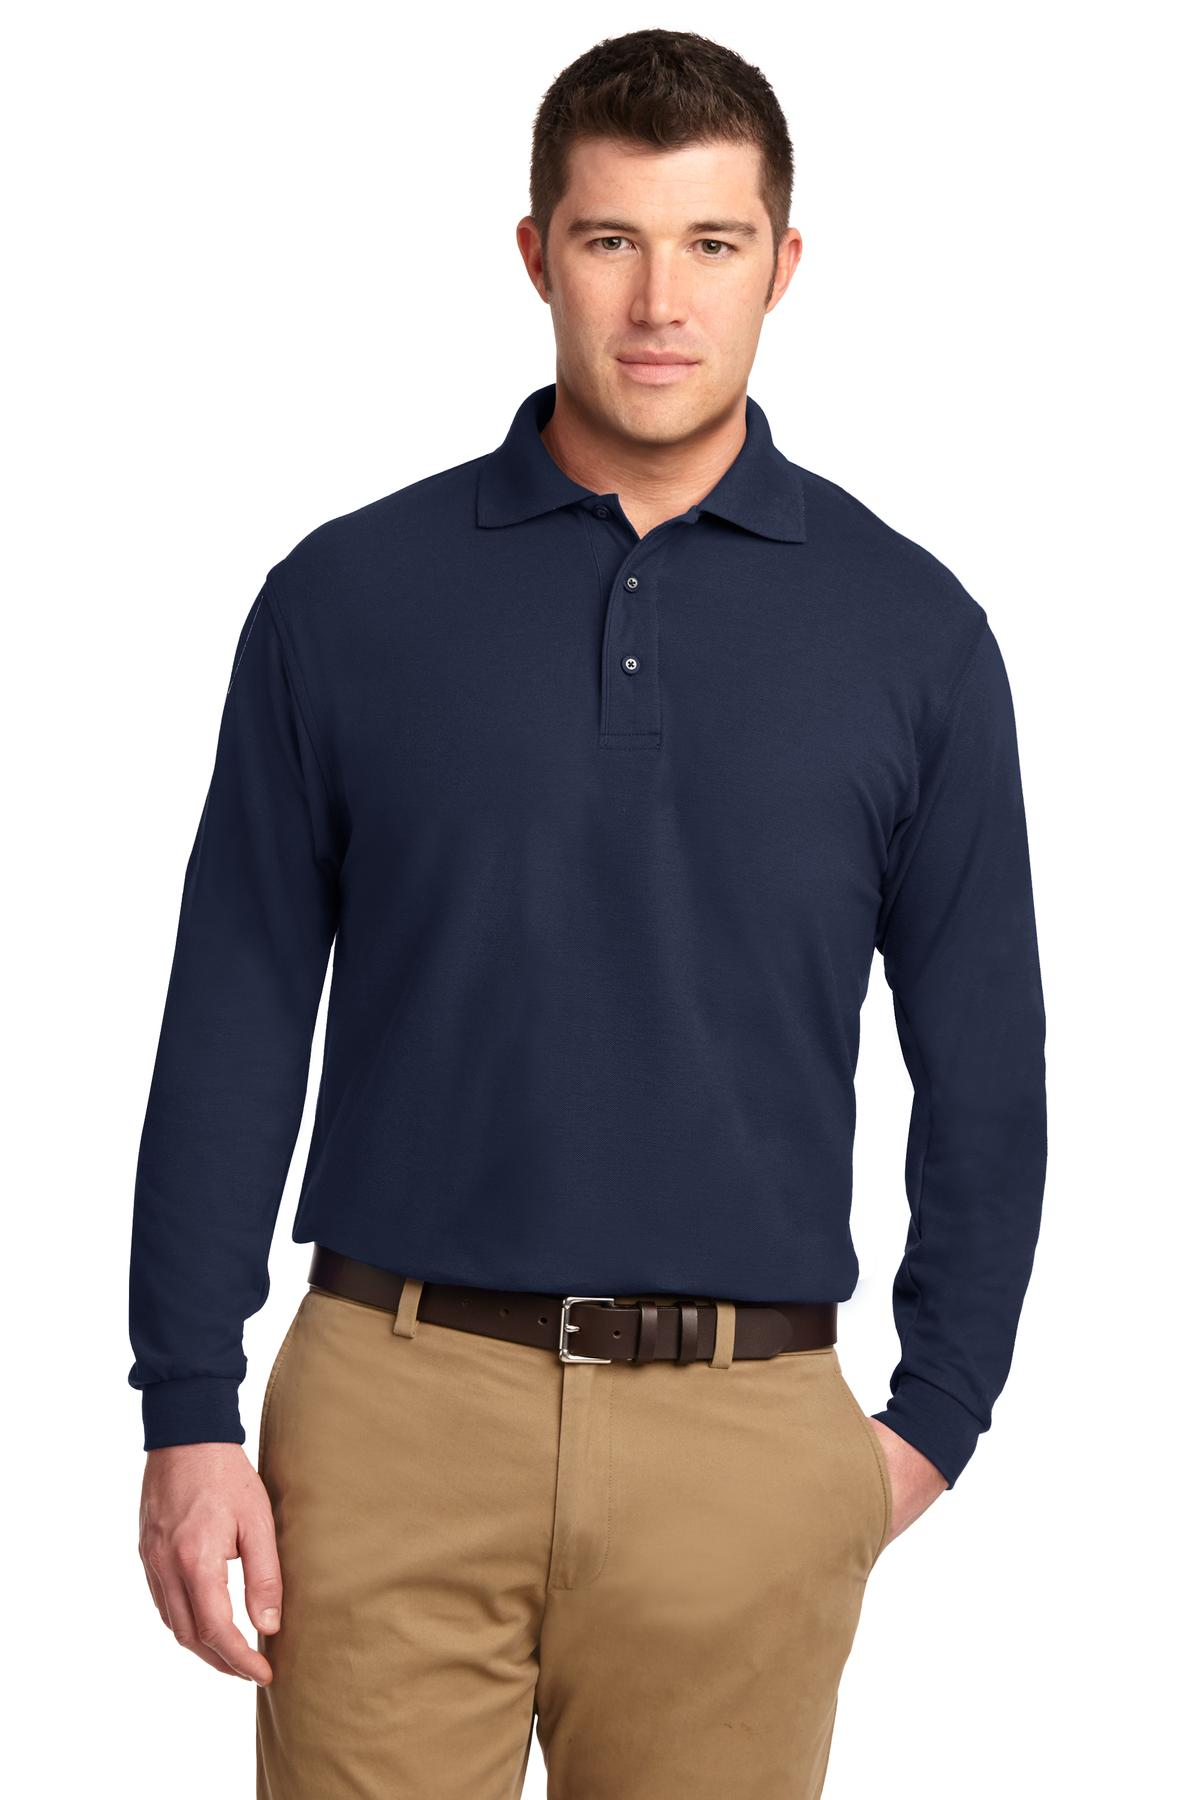 Port Authority ®  Silk Touch™ Long Sleeve Polo.  K500LS - Navy